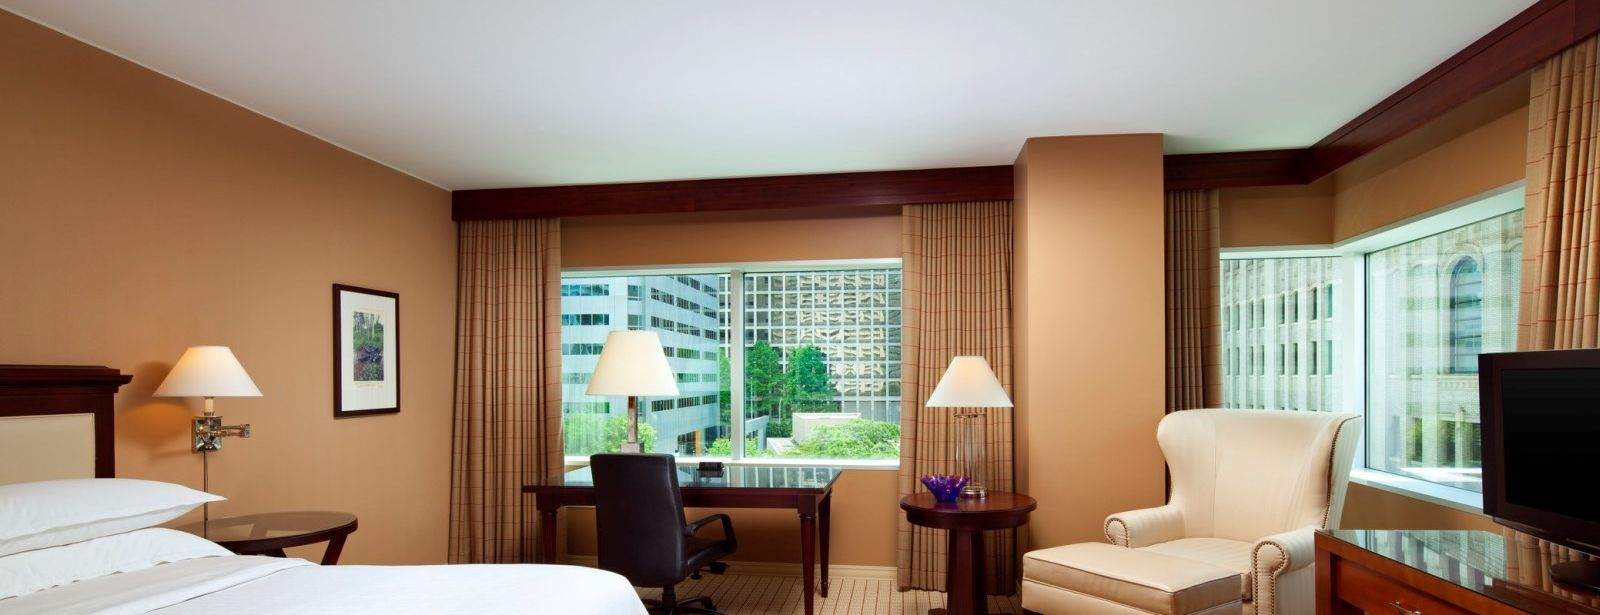 Sheraton Seattle Hotel - Deluxe Room